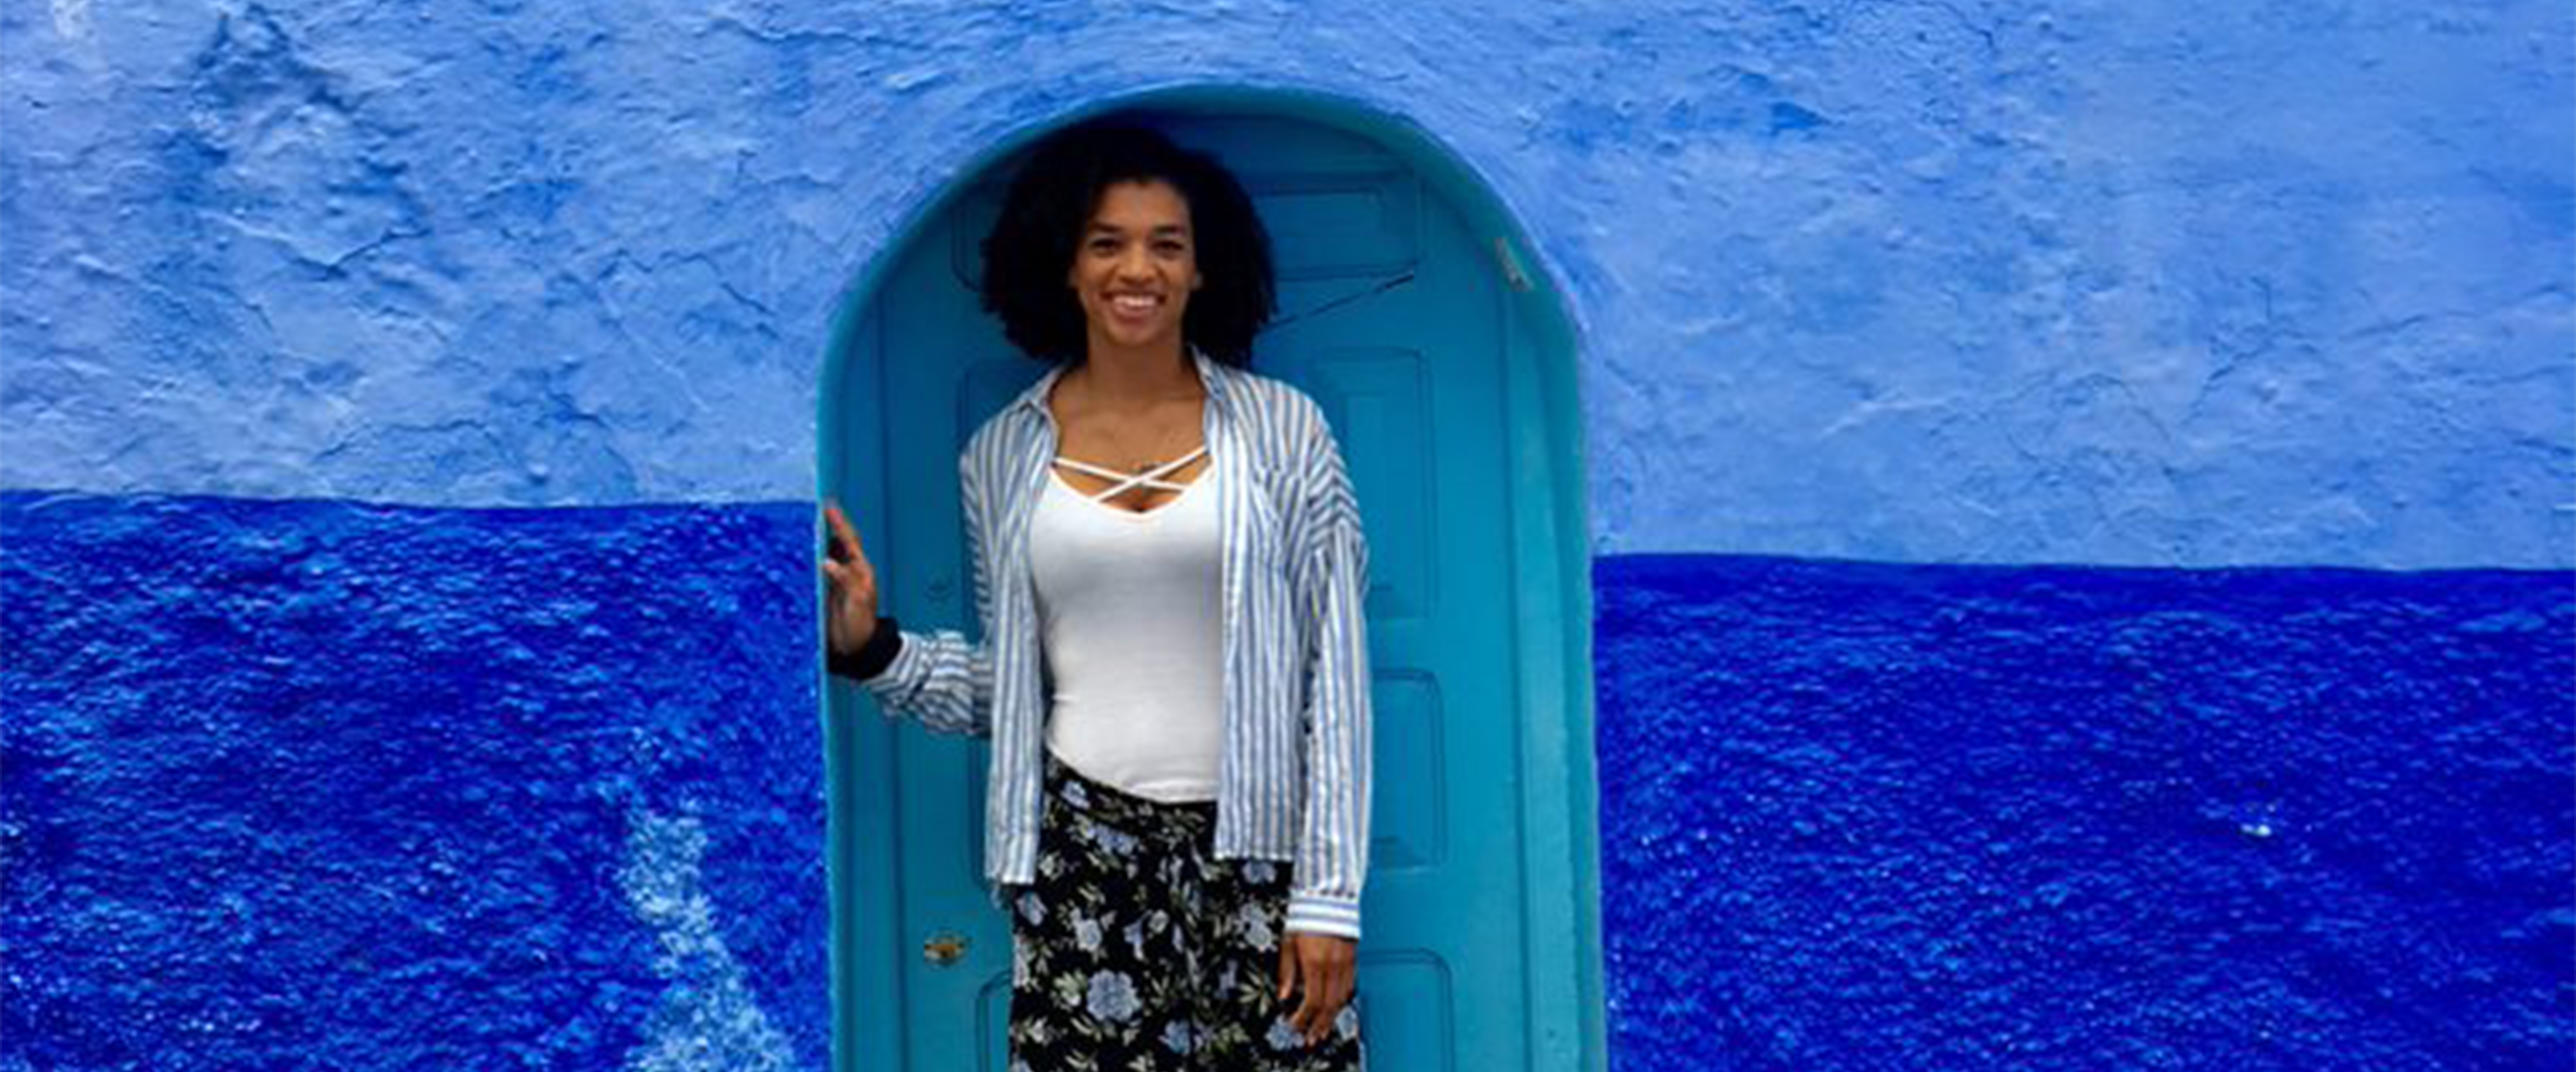 Michael posing in front of one of the blue doors in Morocco, during her study abroad experience